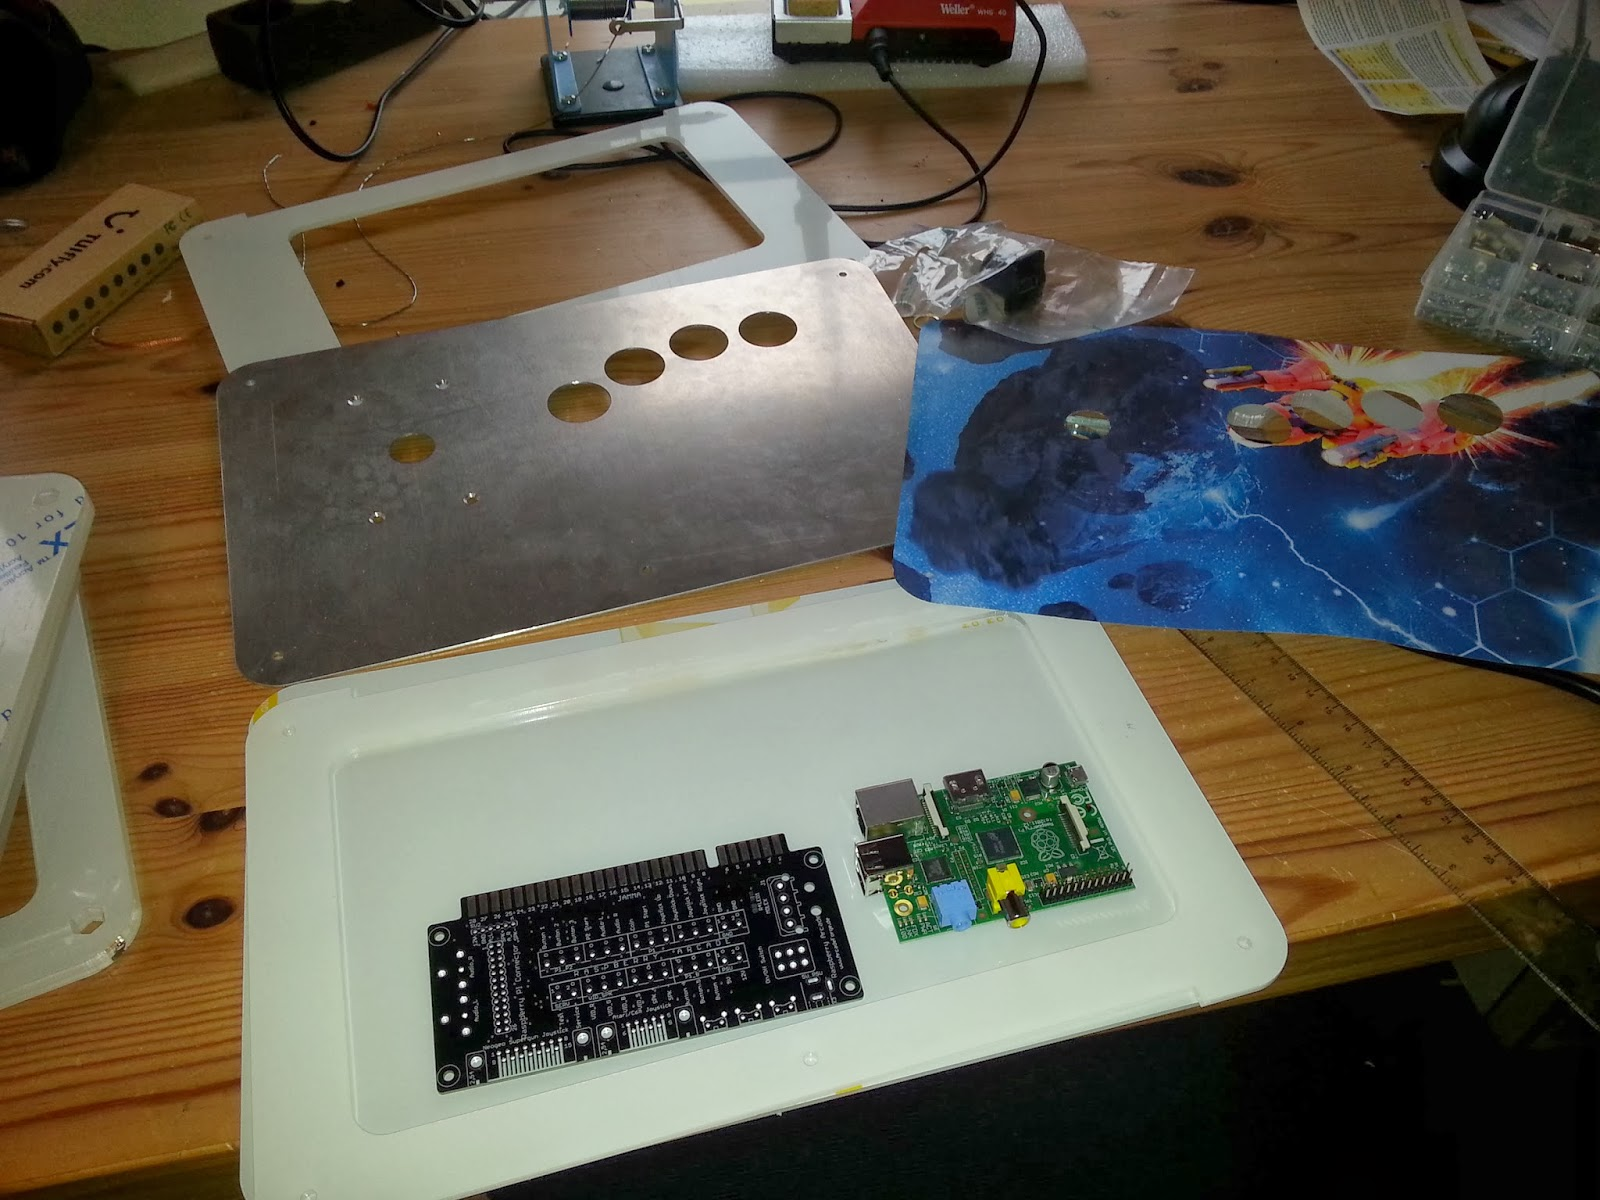 Arcade and Video Game Modding: ArcadeForge de PiJamma